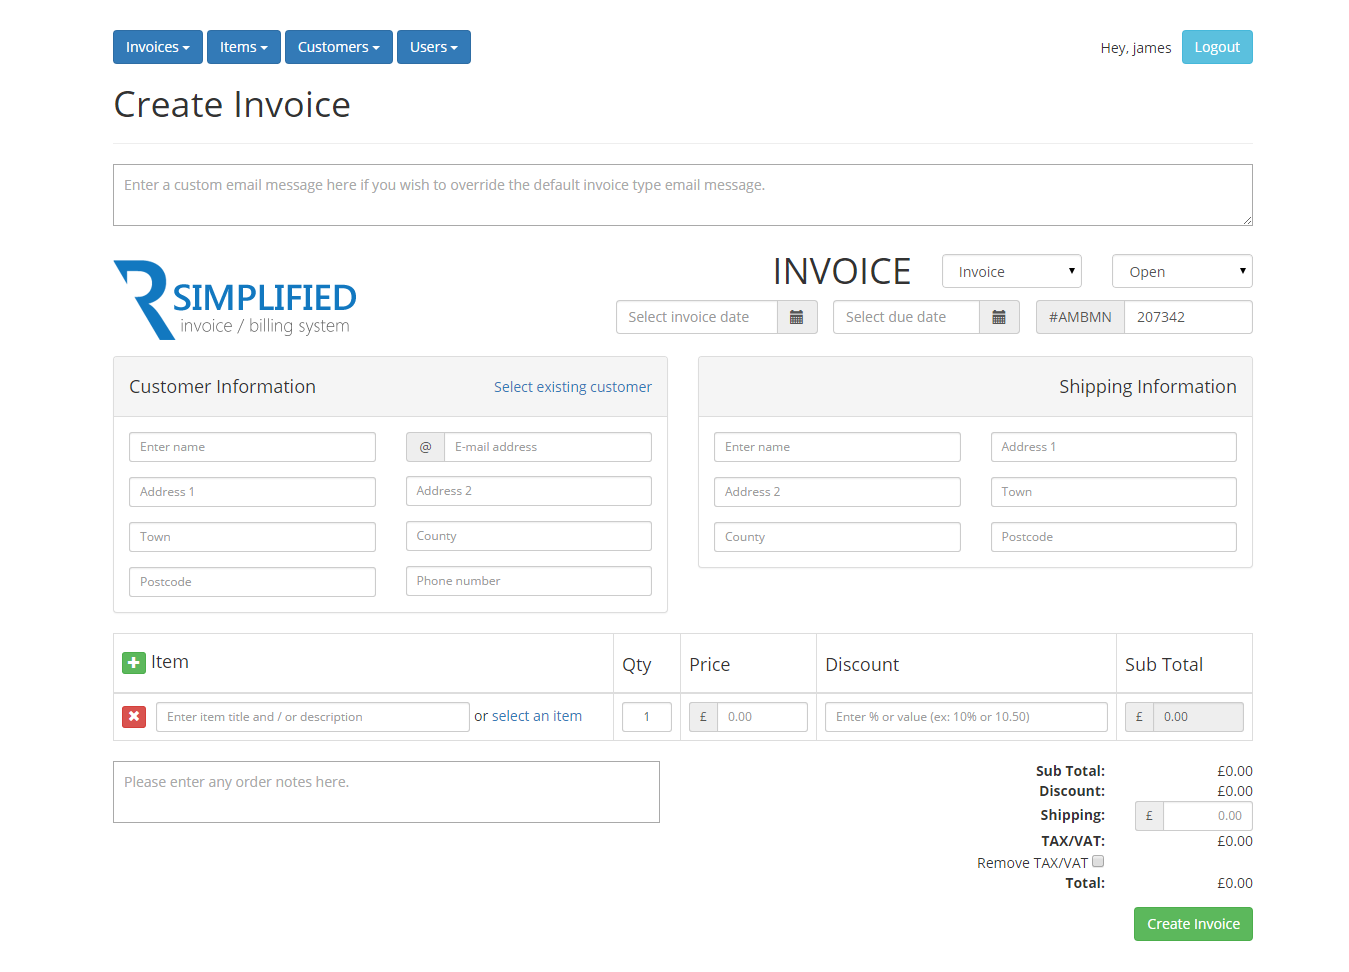 Soulfulpowerus  Wonderful Simplified Php Invoice  Billing System By Rebootdigitaluk  With Excellent  Createinvoicepng  With Amusing Unpaid Invoice Also Free Download Invoice Template In Addition Online Invoicing System And Gmc Acadia Invoice Price As Well As How To Send A Invoice On Paypal Additionally Fedex Pay Invoice Online From Codecanyonnet With Soulfulpowerus  Excellent Simplified Php Invoice  Billing System By Rebootdigitaluk  With Amusing  Createinvoicepng  And Wonderful Unpaid Invoice Also Free Download Invoice Template In Addition Online Invoicing System From Codecanyonnet